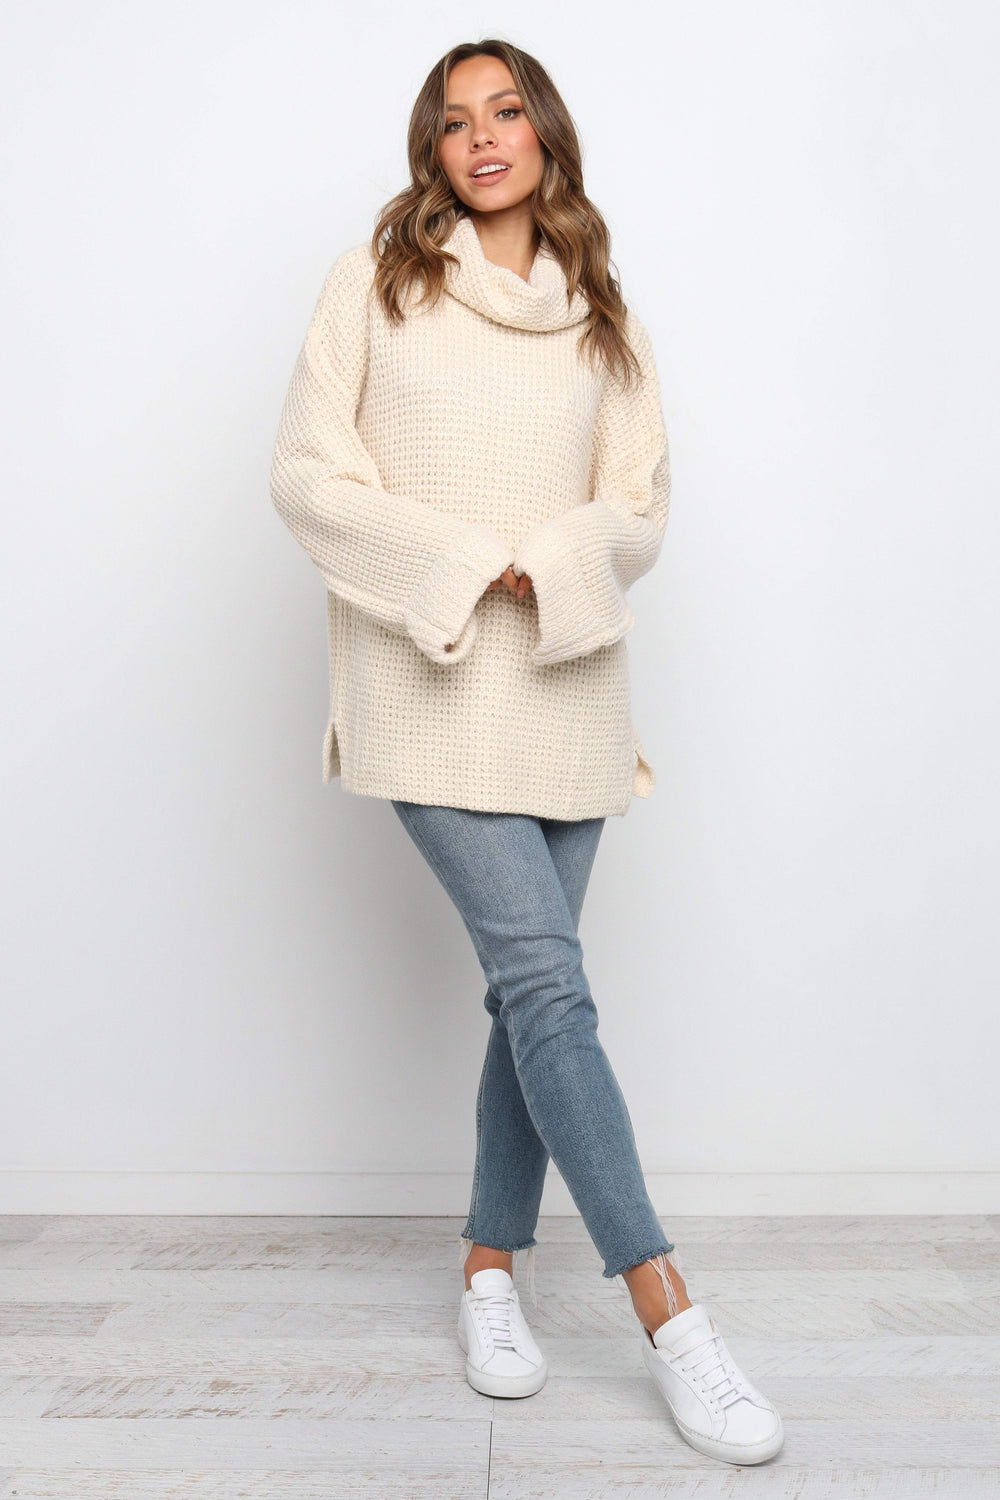 Petal and Pup USA KNITWEAR Josie Knit - Cream